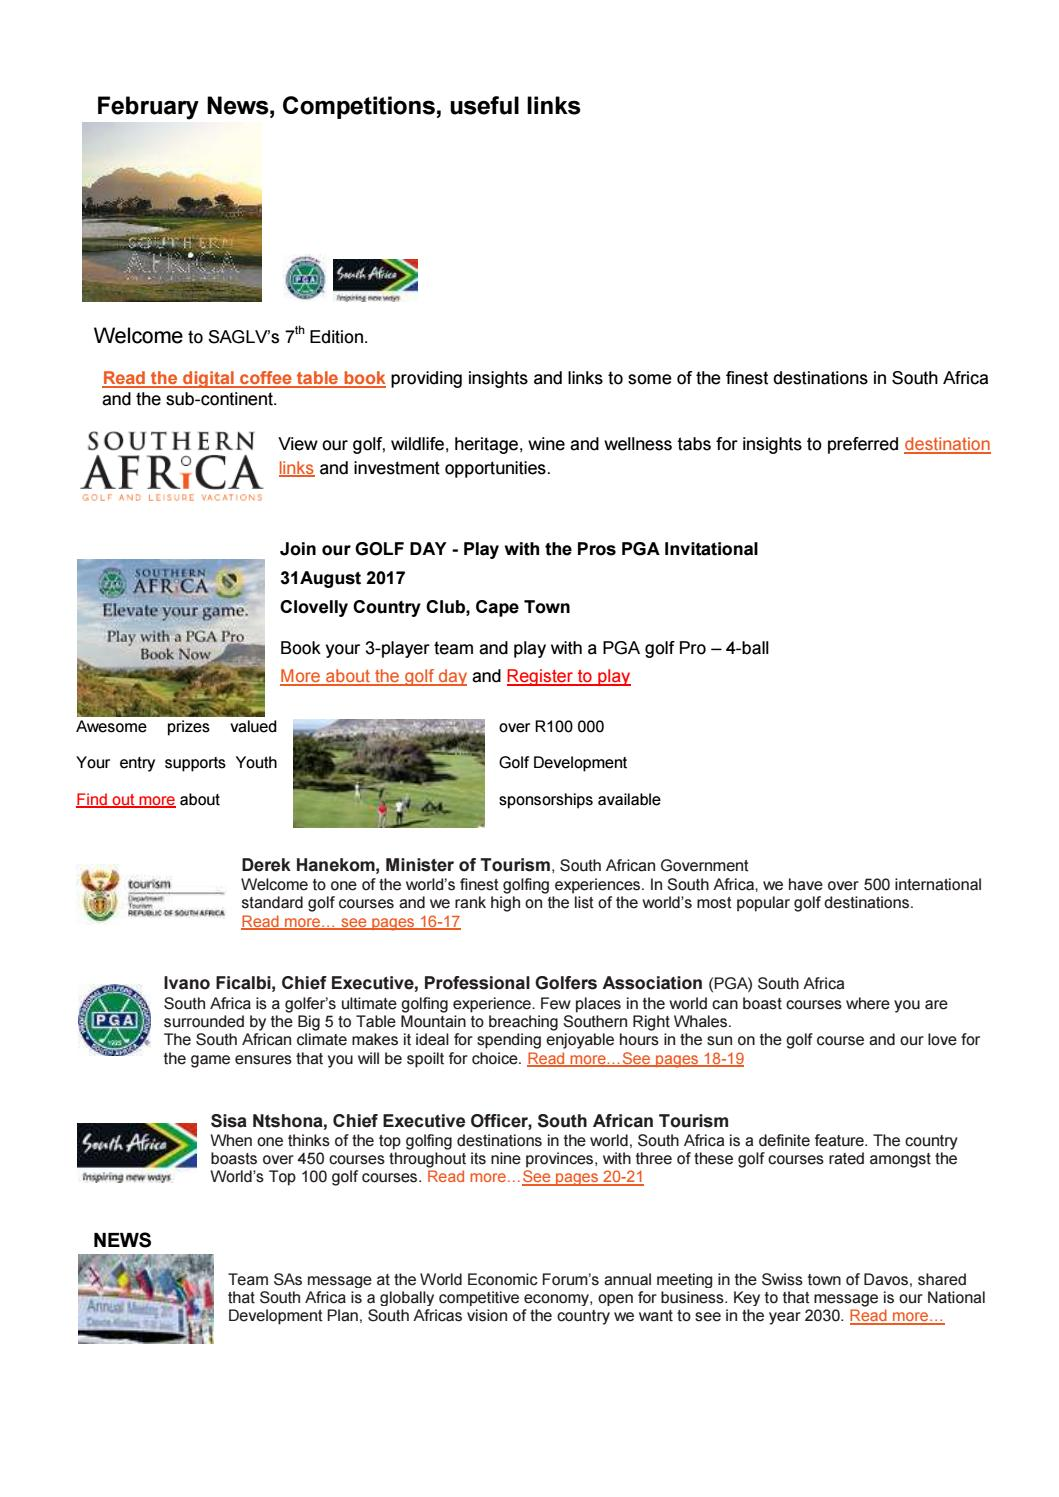 saglv sa golf and leisure vacations february 2017 news by stefan